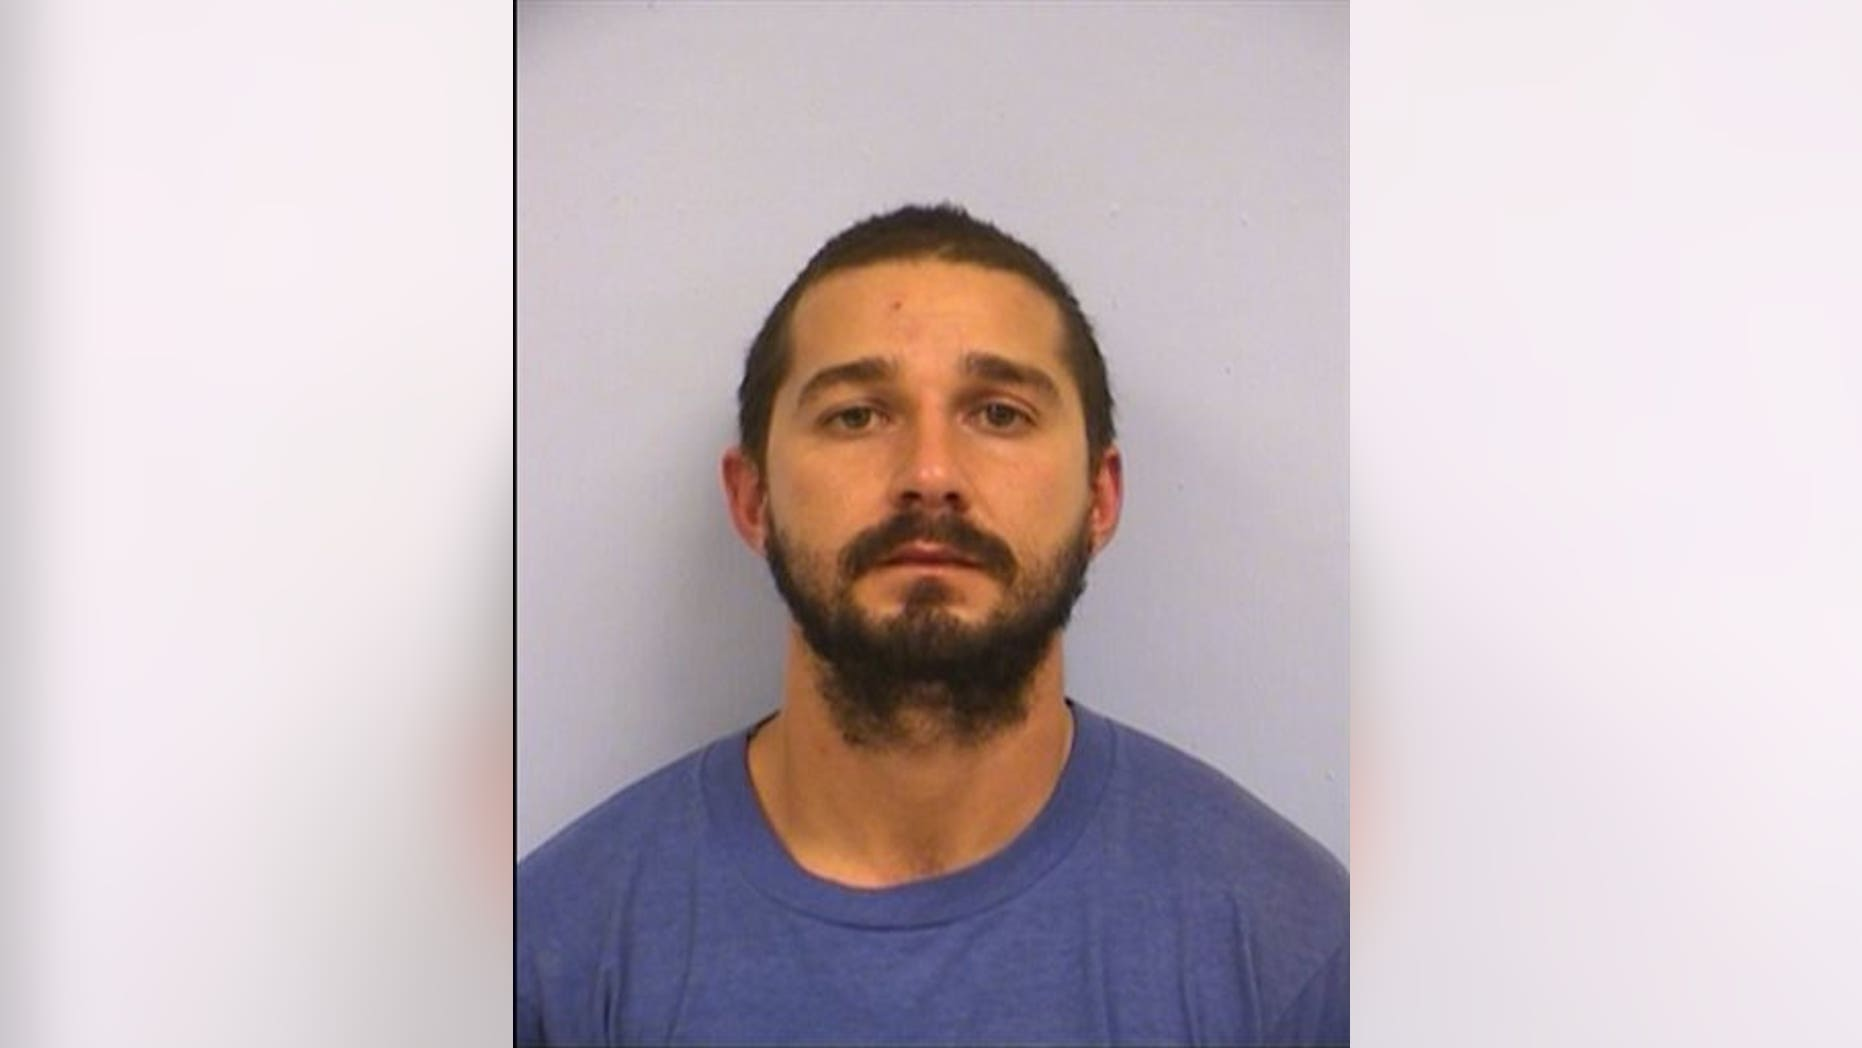 This booking mug provided by the Austin Police Department shows actor Shia LaBeouf. (Austin Police Department via AP)